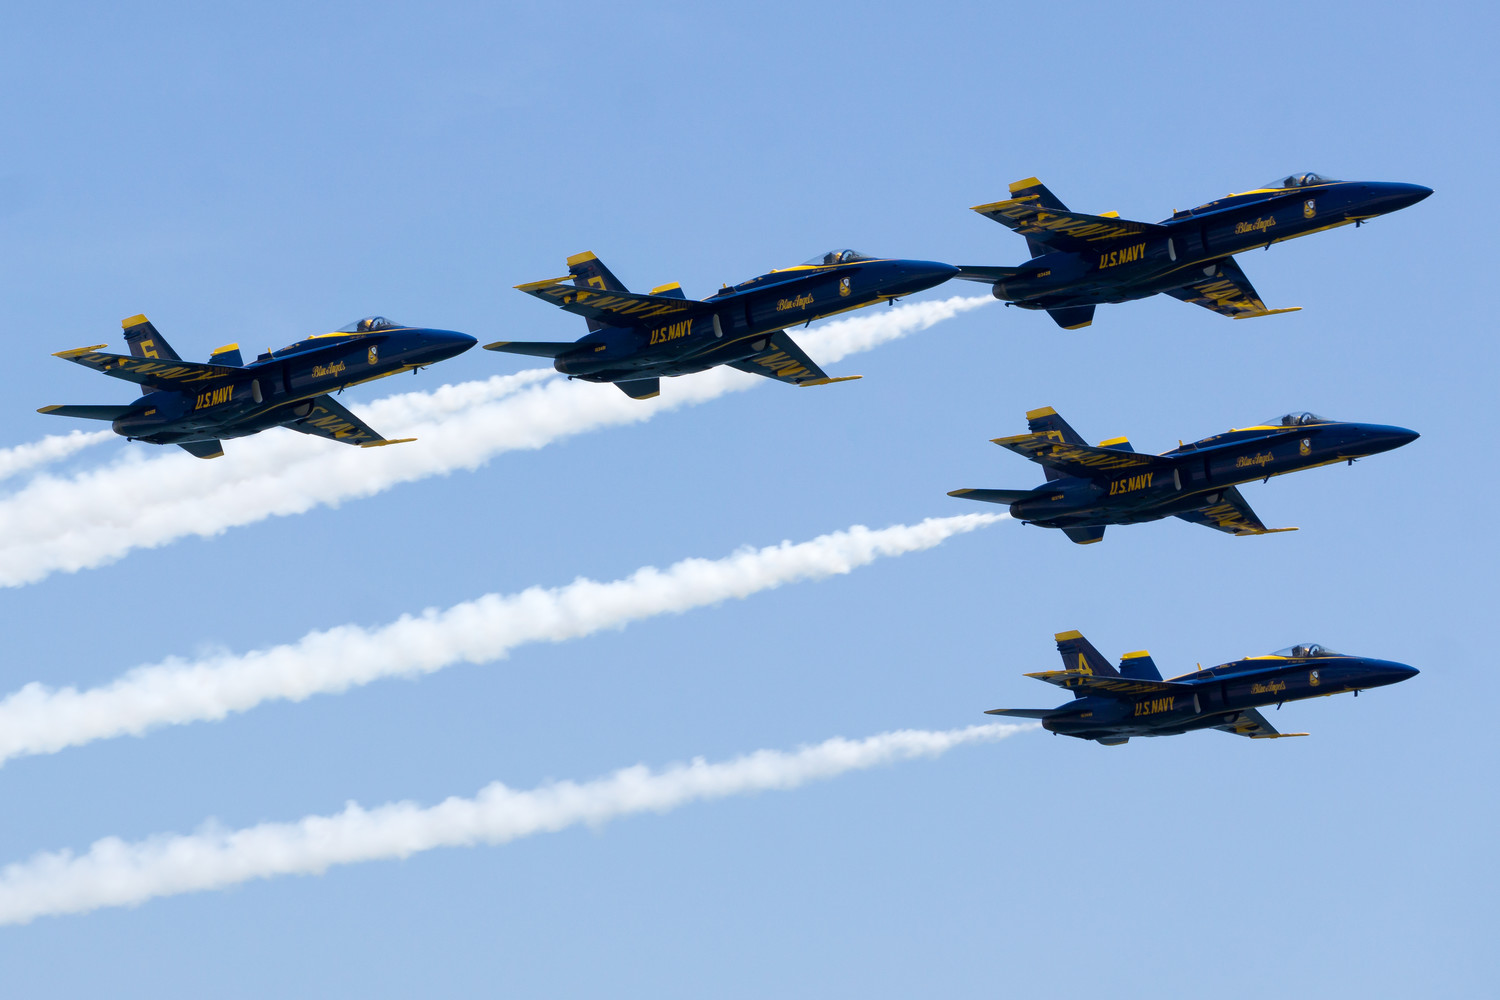 The Navy's Blue Angels, this year's headliner, performed at the 2016 show, which drew over 450,000 spectators.